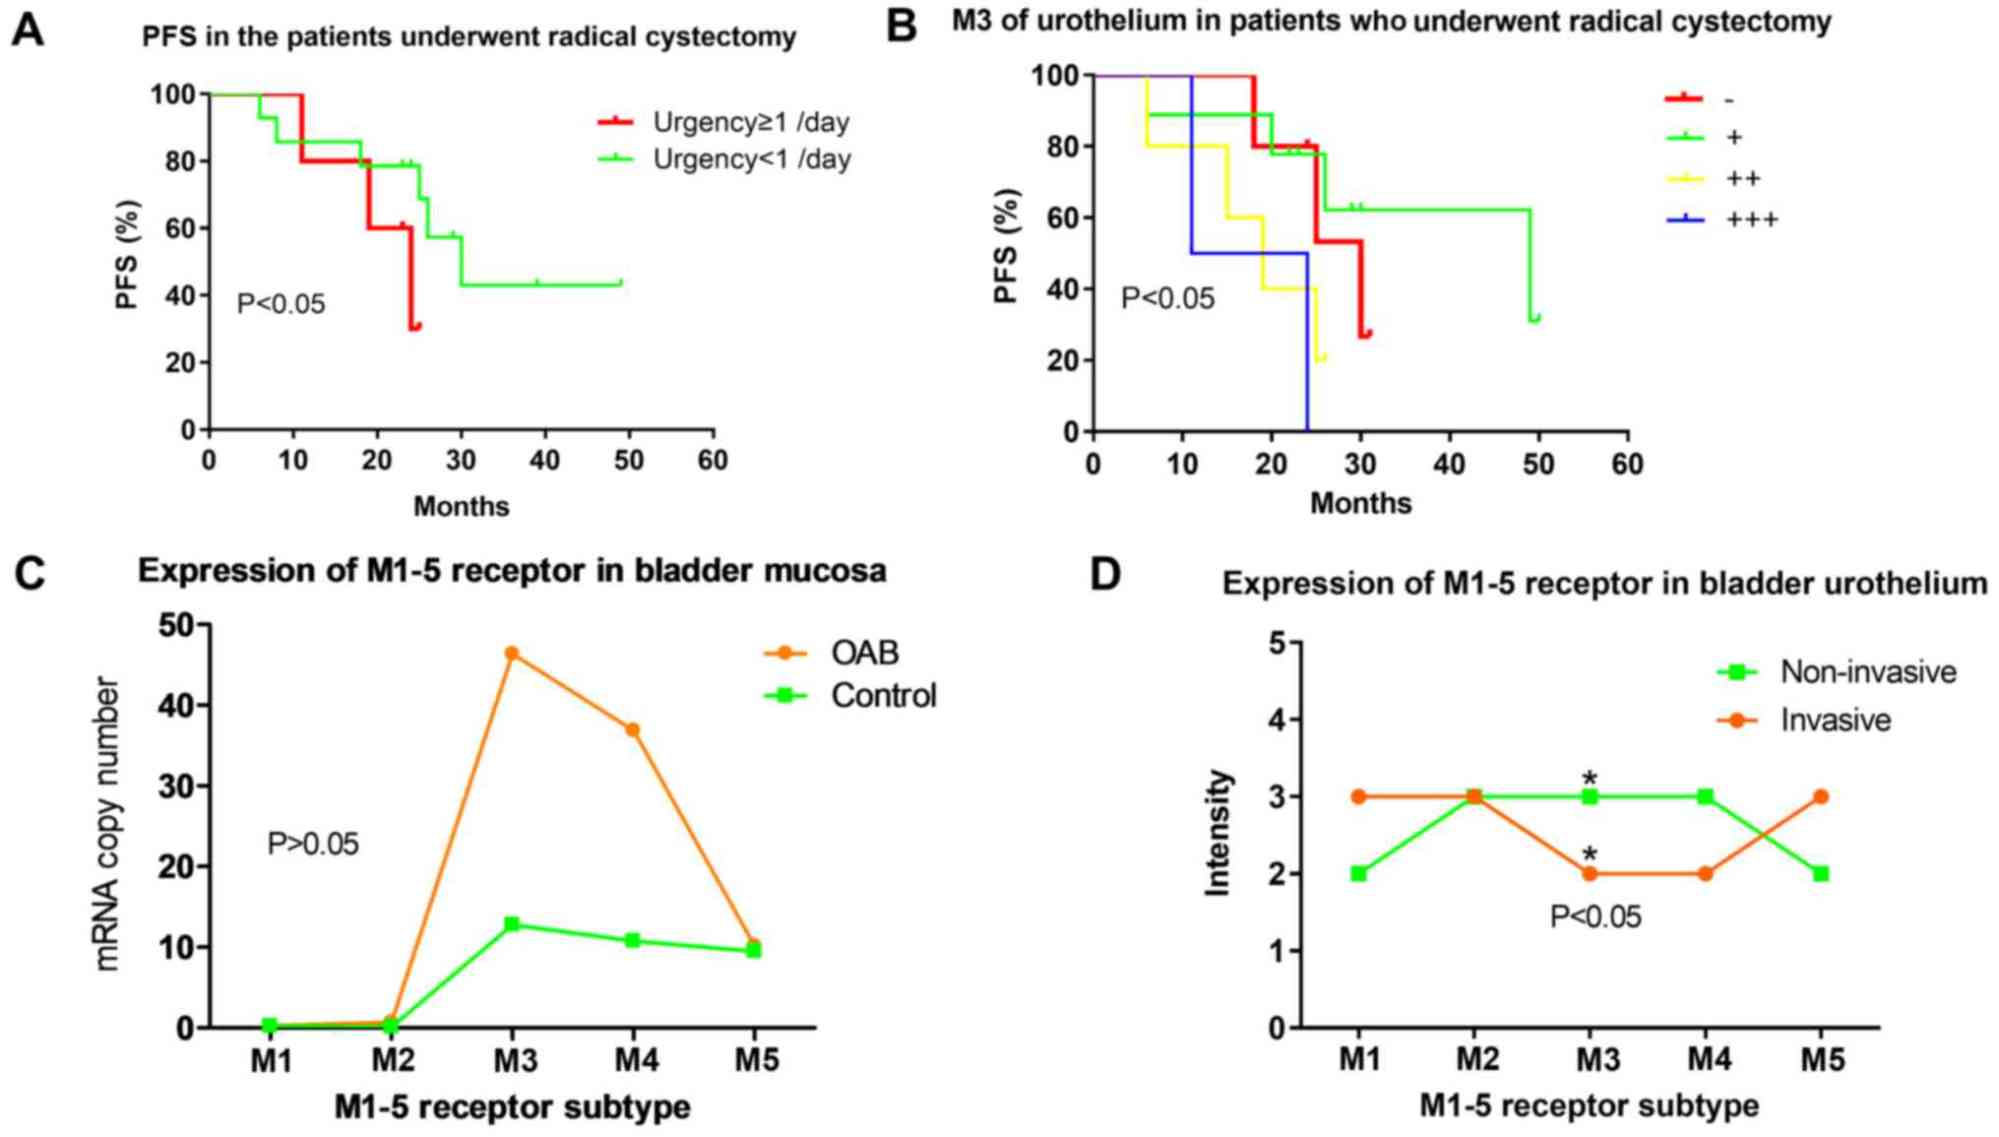 hight resolution of  c expression levels of machrs m1 5r in bladder mucosa of patients with oab based on reverse transcription polymerase chain reaction oab group m1 5